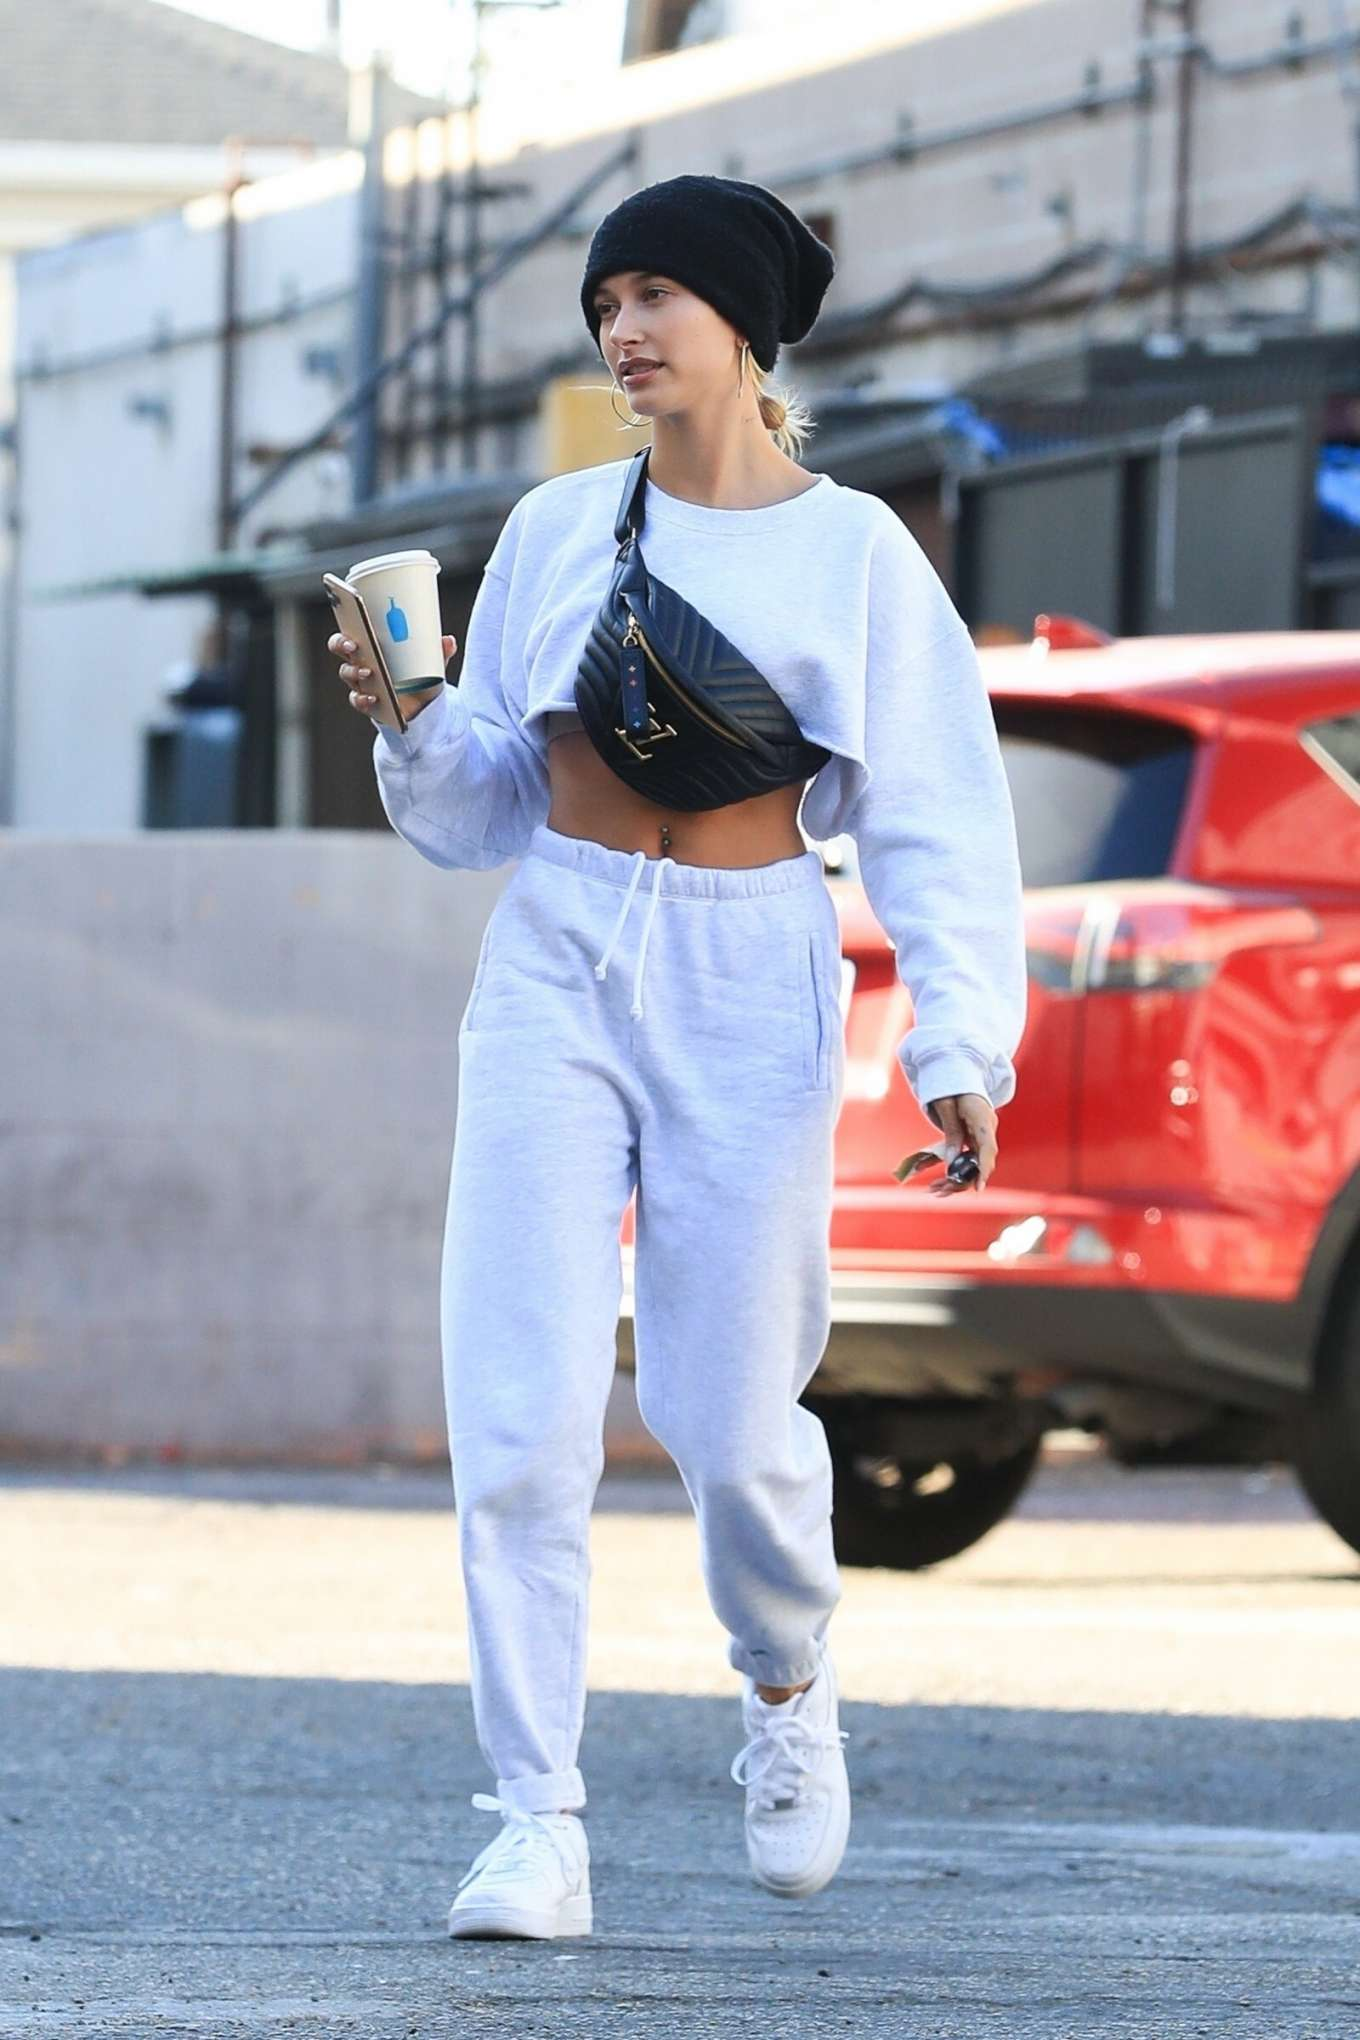 Hailey Baldwin donning a Oversized grey crop top with a woolen material, full sleeves and a crew neck